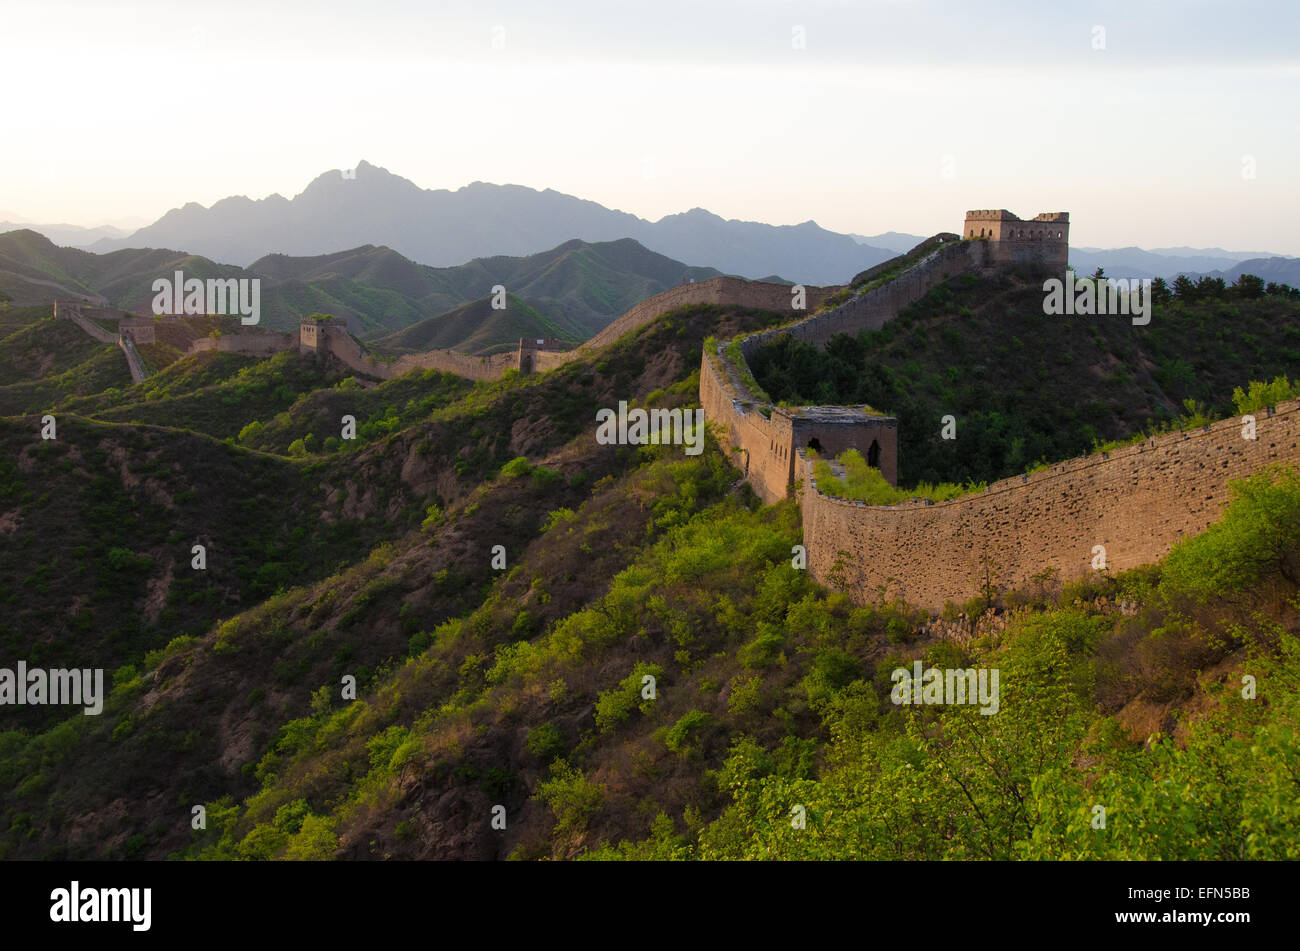 The 2,300 year old Great Wall of China is illuminated by the setting sun. - Stock Image